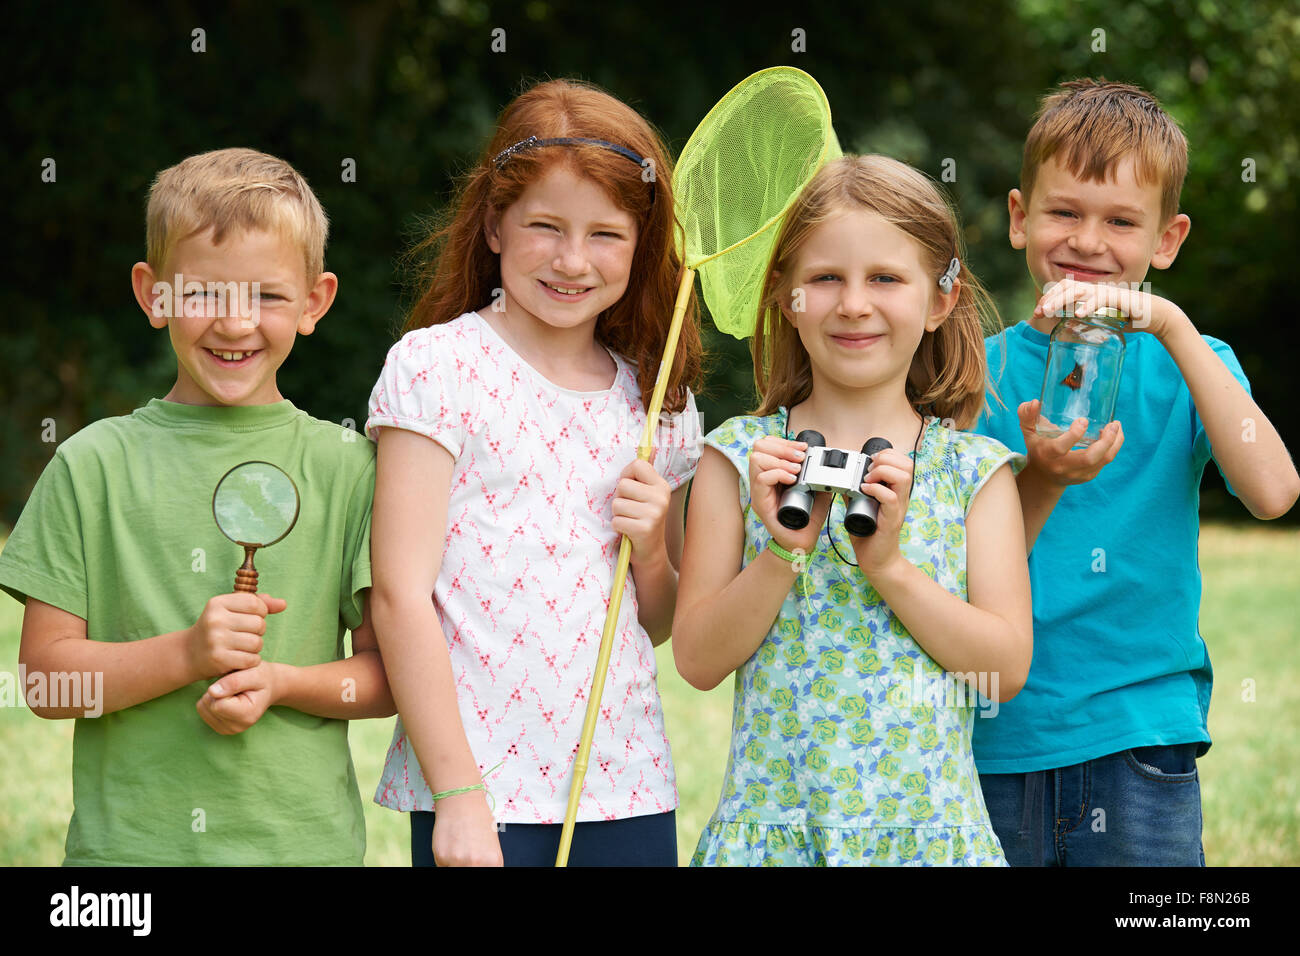 Group Of Children Exploring Nature Together - Stock Image